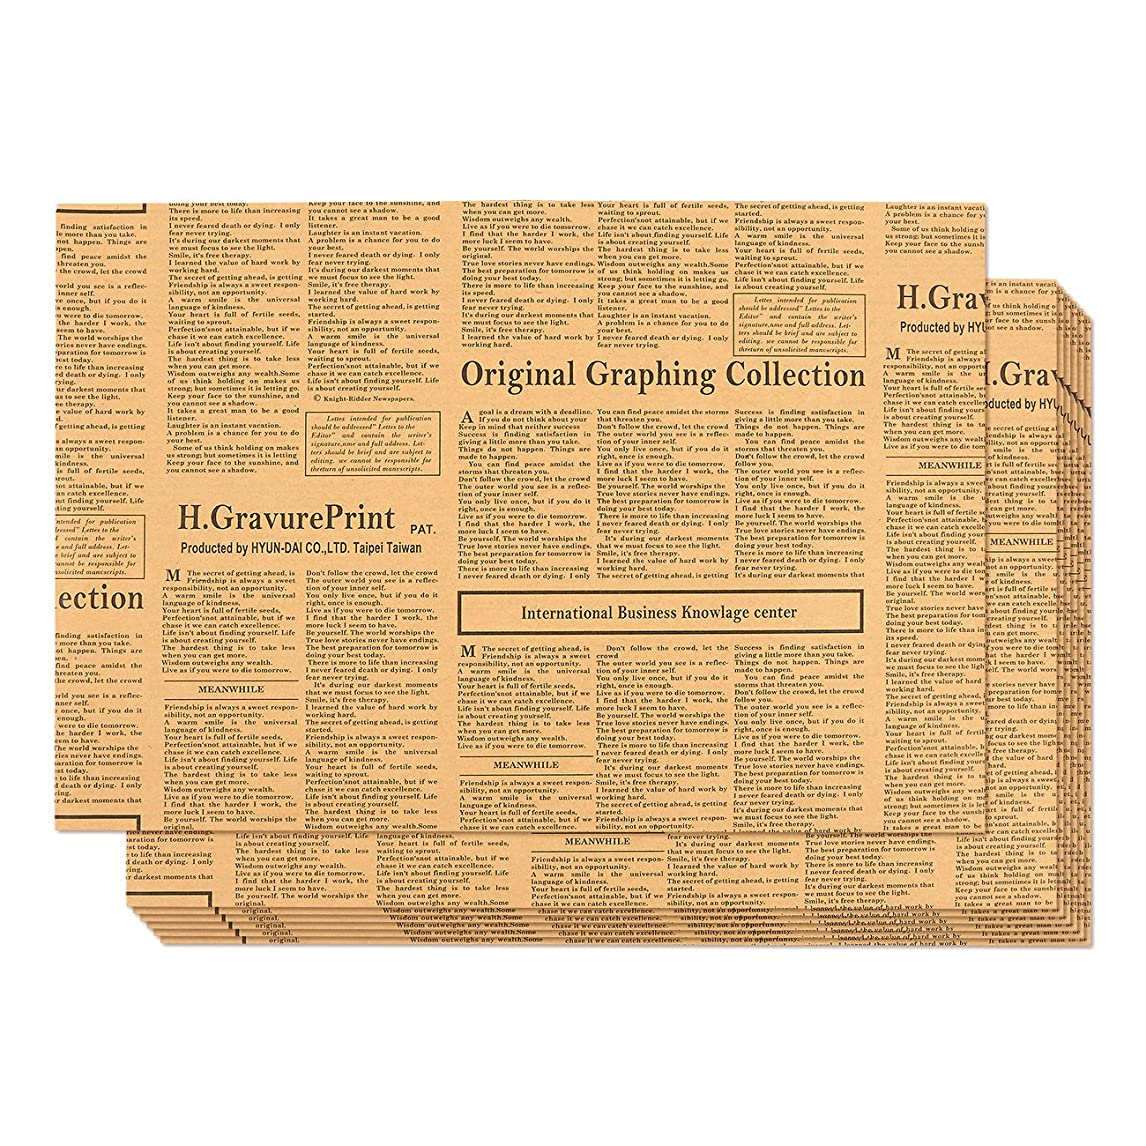 Kraft Paper Roll - 12-Pack Packing Paper, Newspaper Theme Brown Kraft Paper Roll, Brown Wrapping Paper, 27.75 x 19.75 Inches xrick22915519149